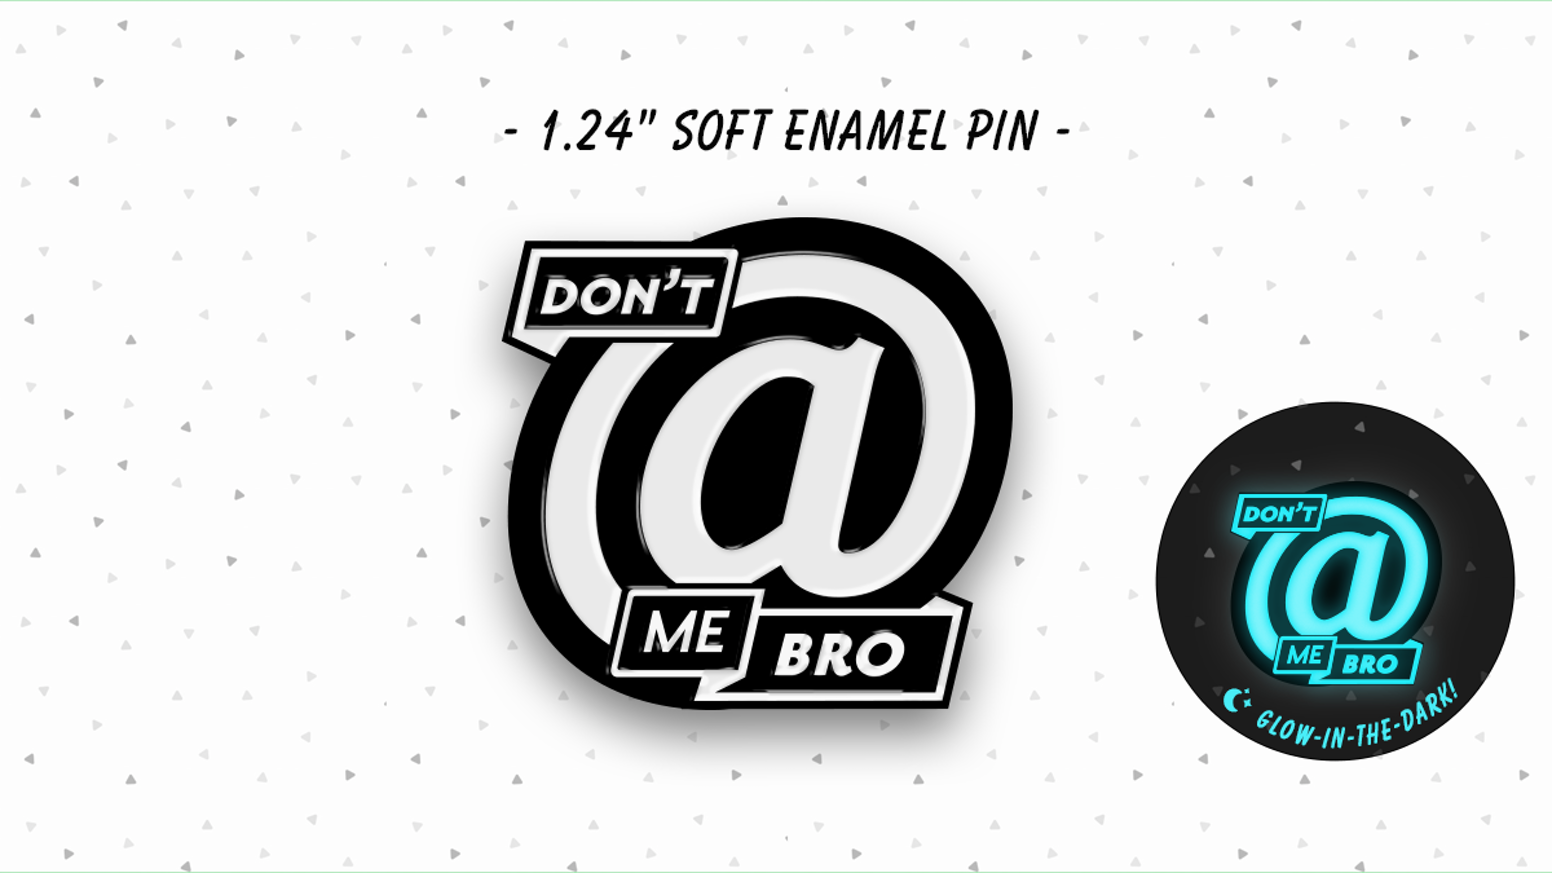 Enamel pins for those weary introverted souls inundated by useless and unnecessary notifications.